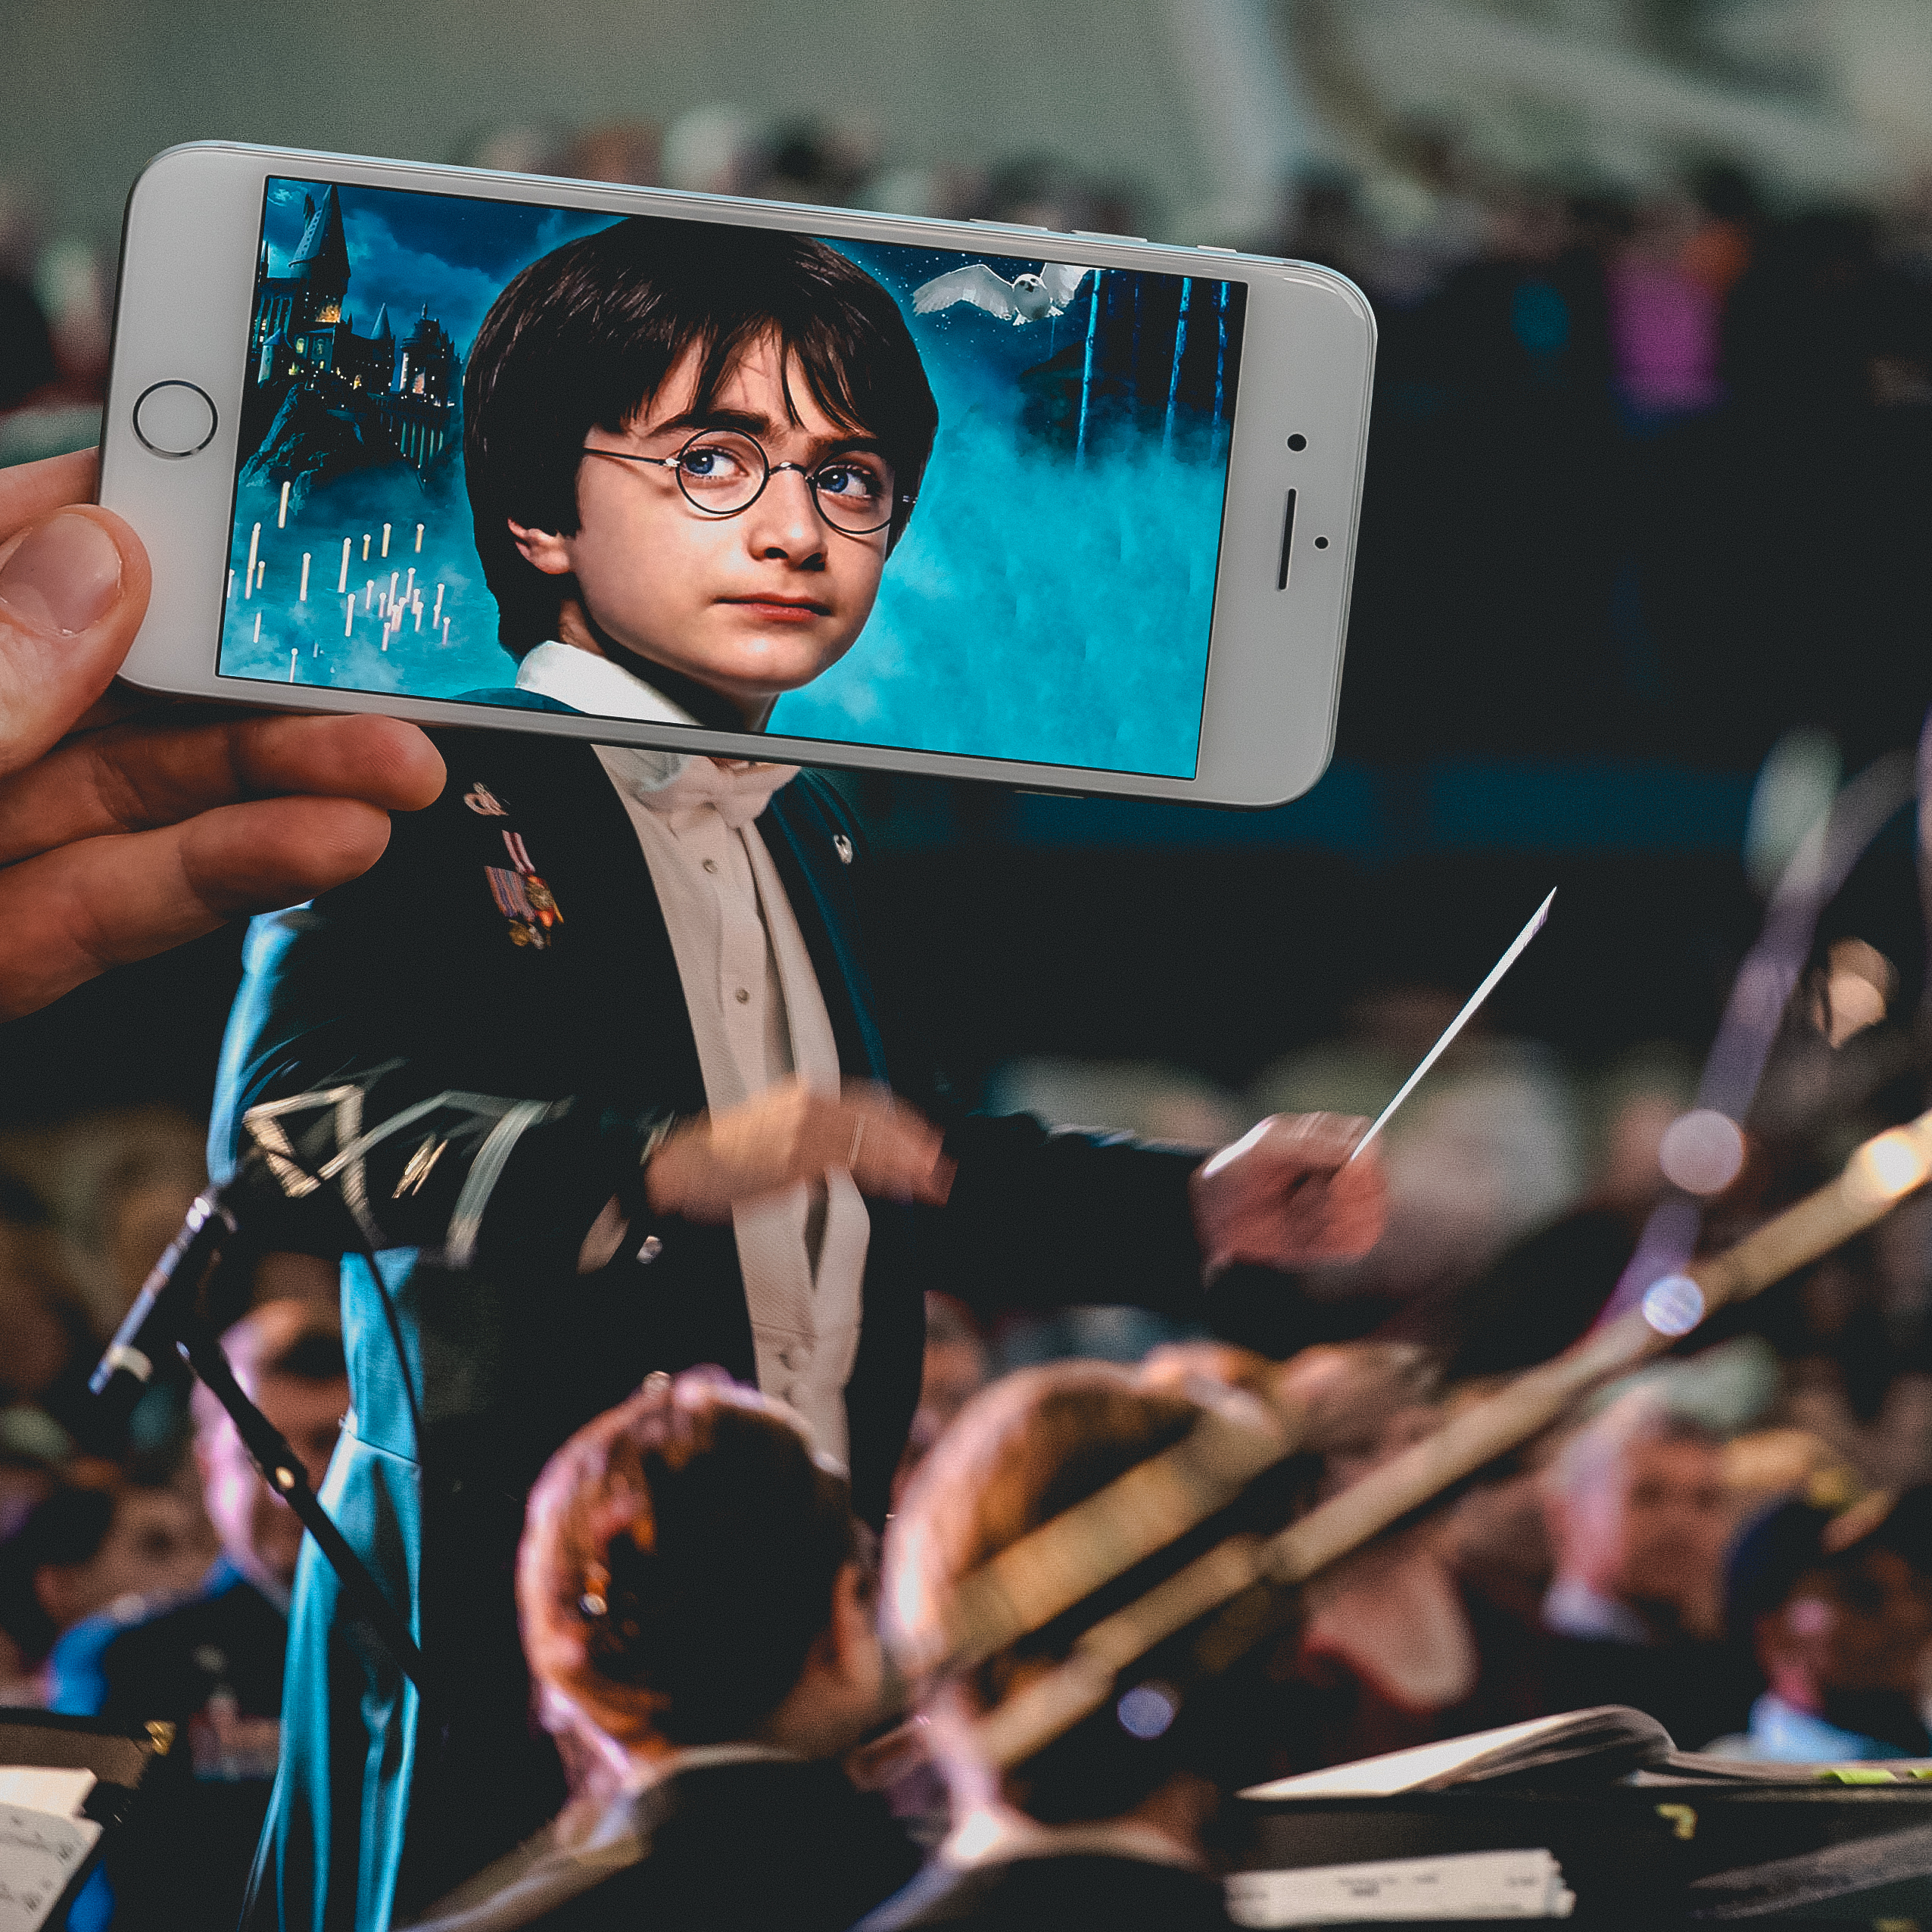 Harry potter chef orchestre copie